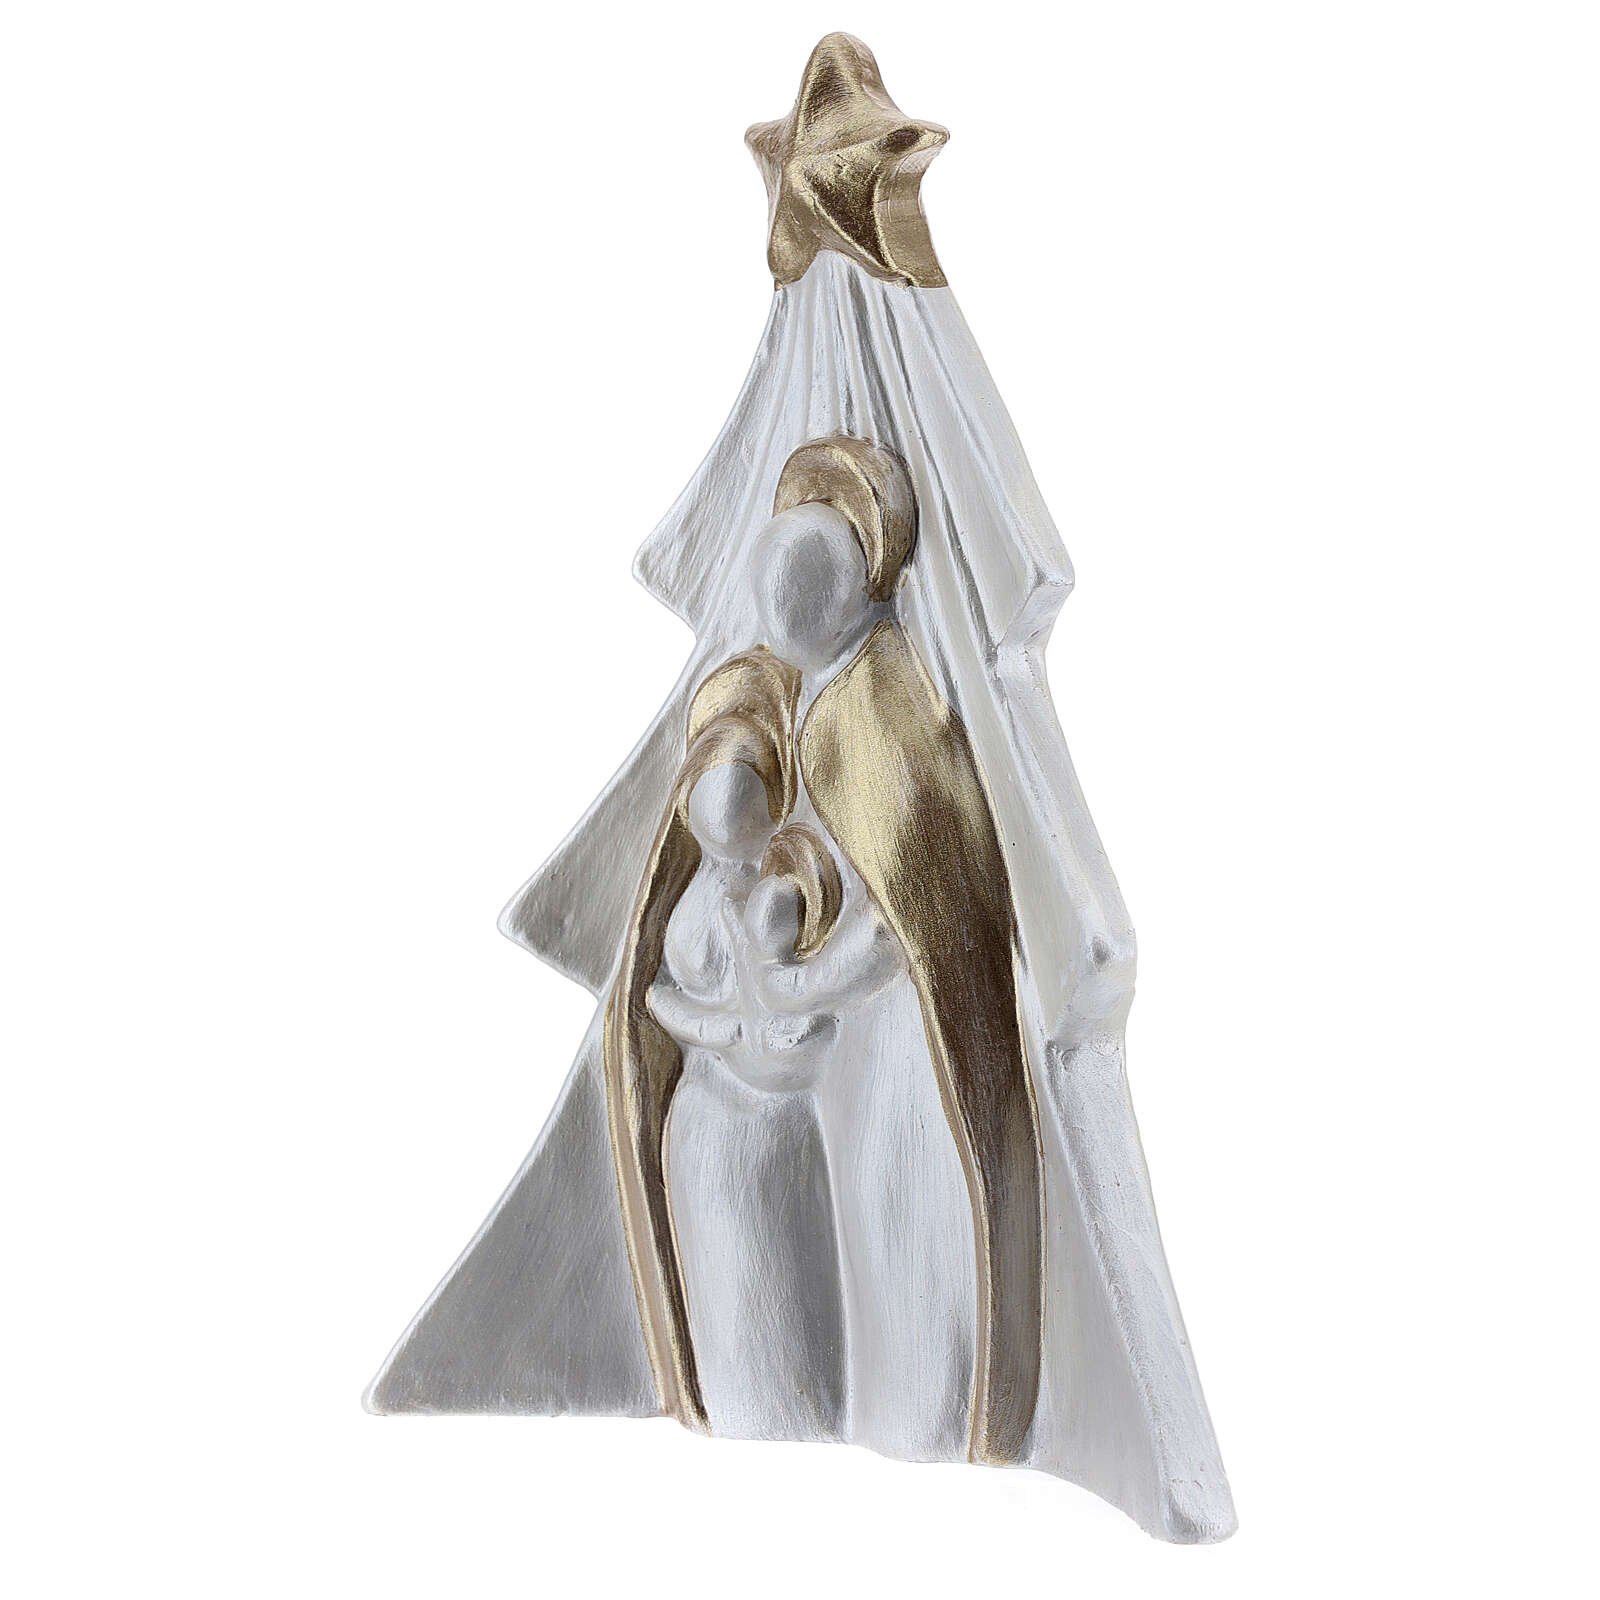 Holy Family Christmas decoration in white gold Deruta terracotta 19x16 cm 4